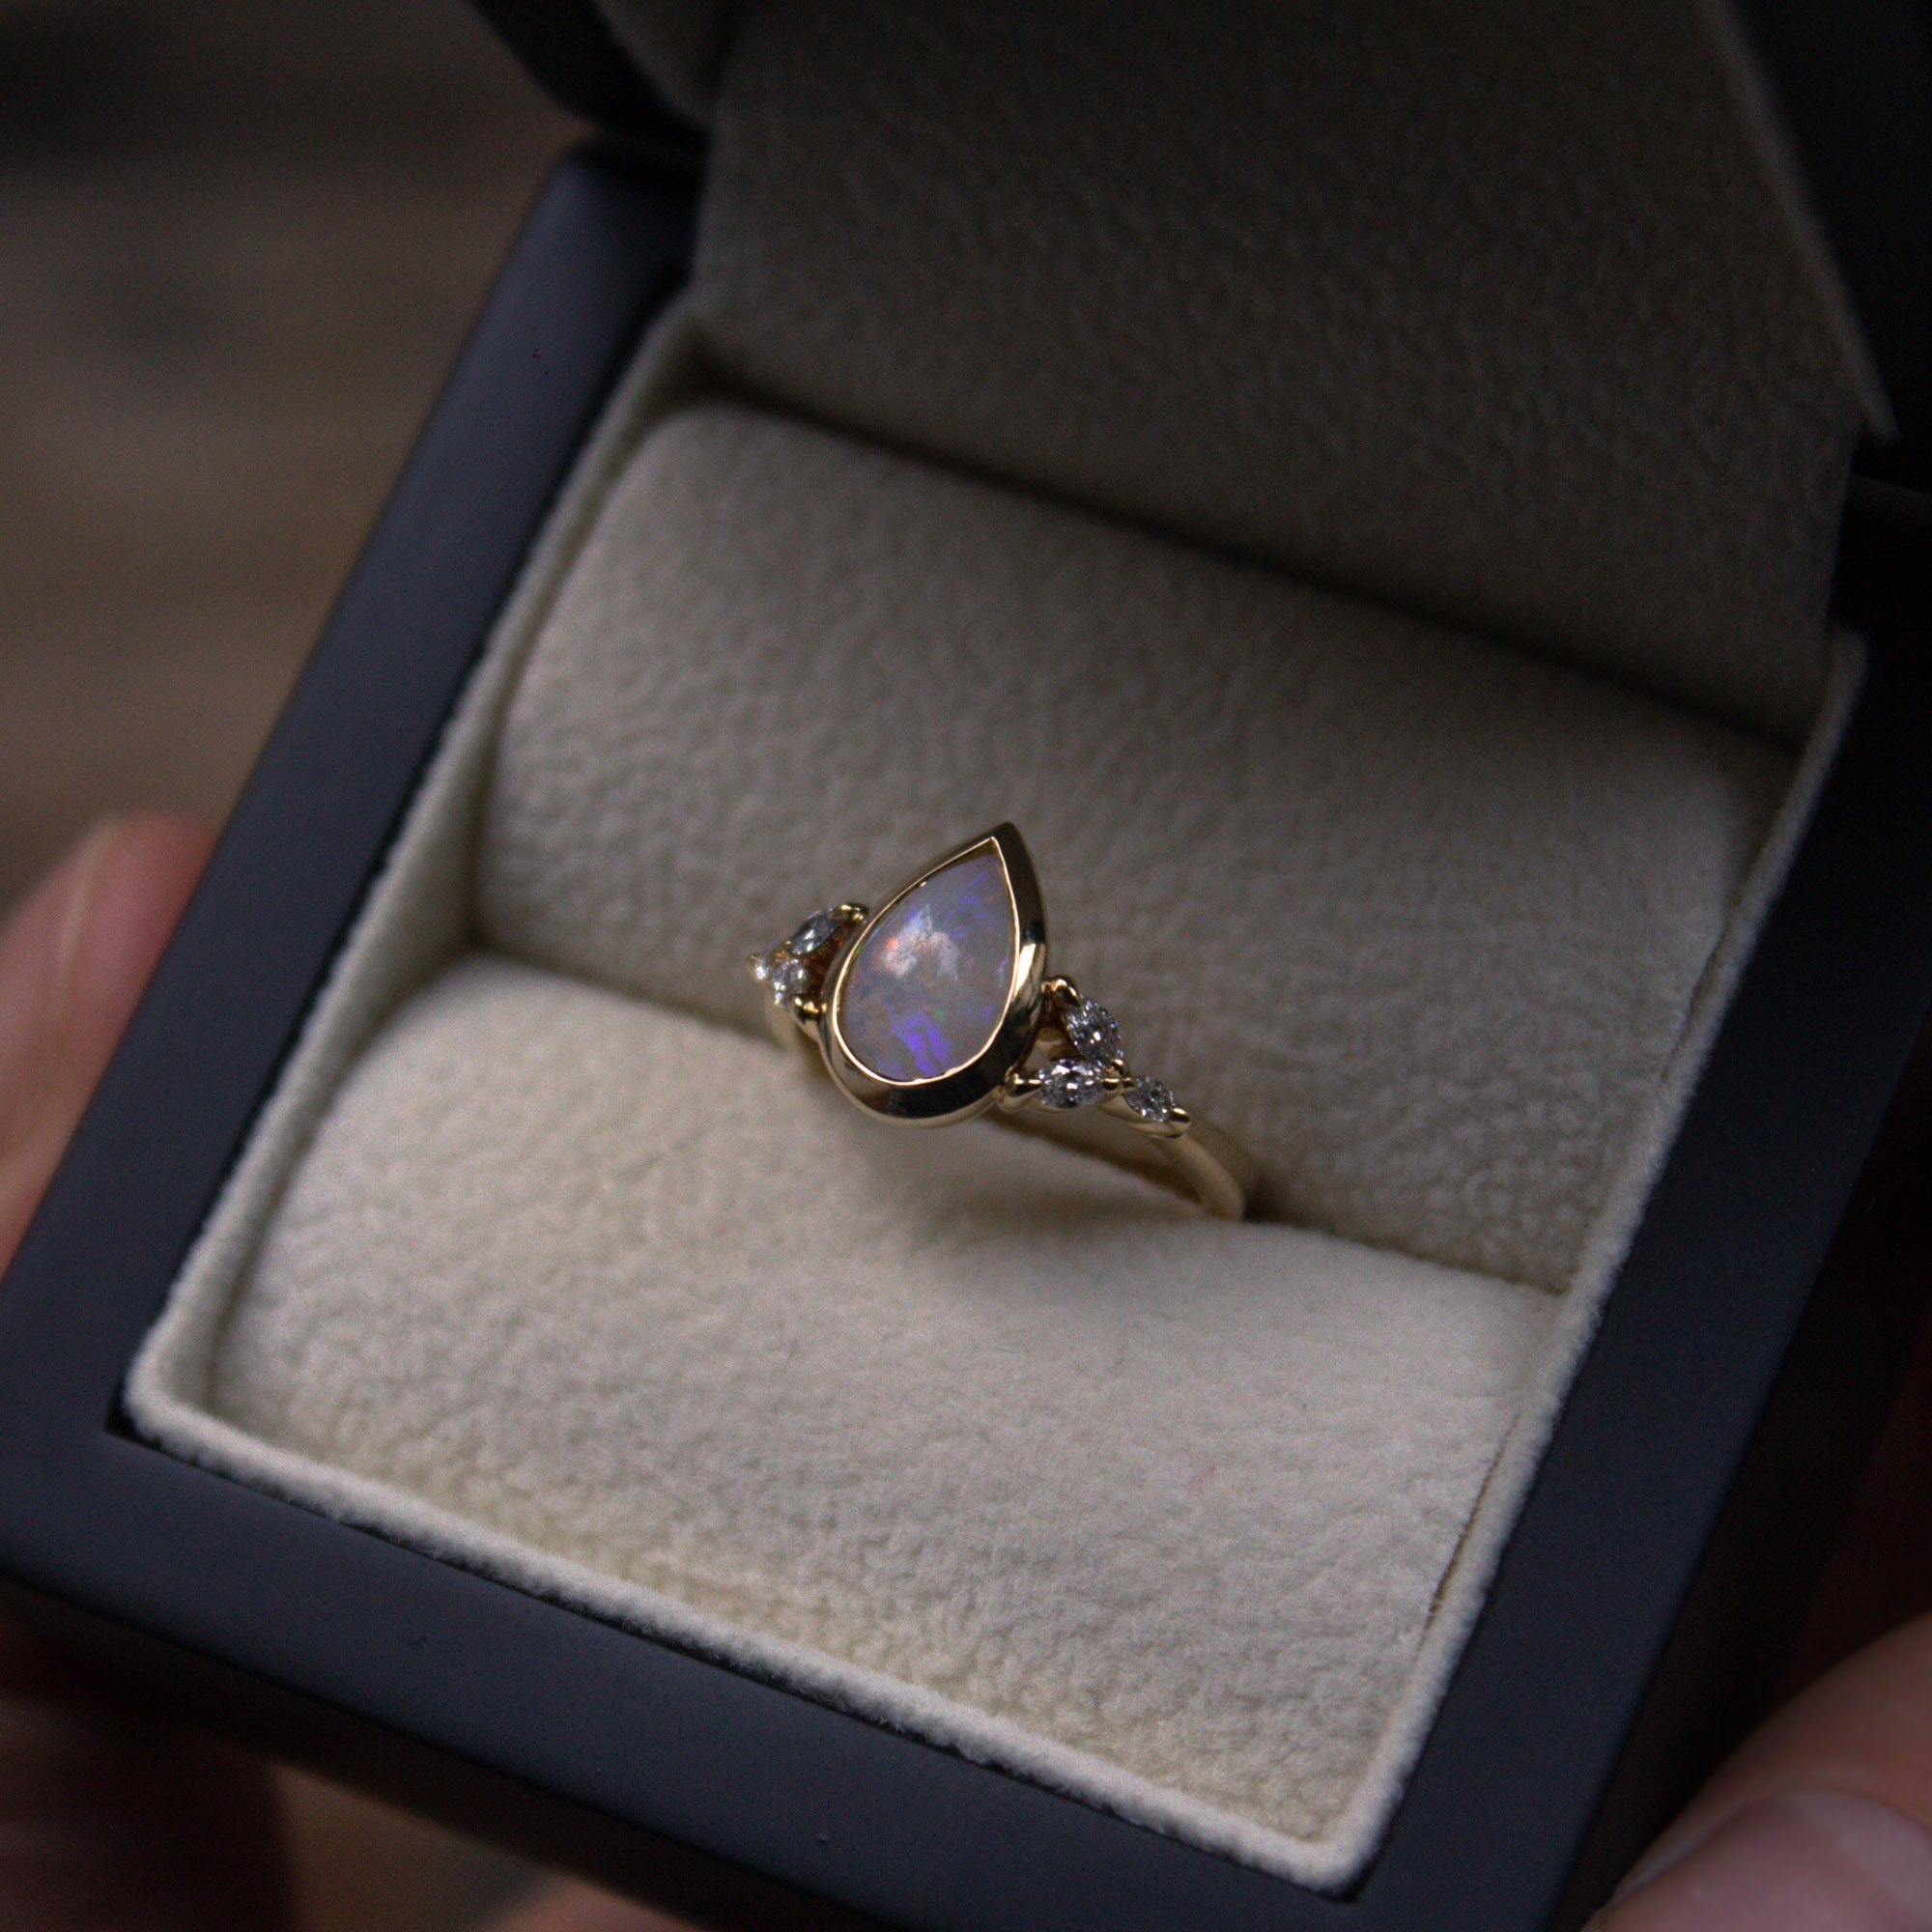 Bespoke oval and diamond engagement ring